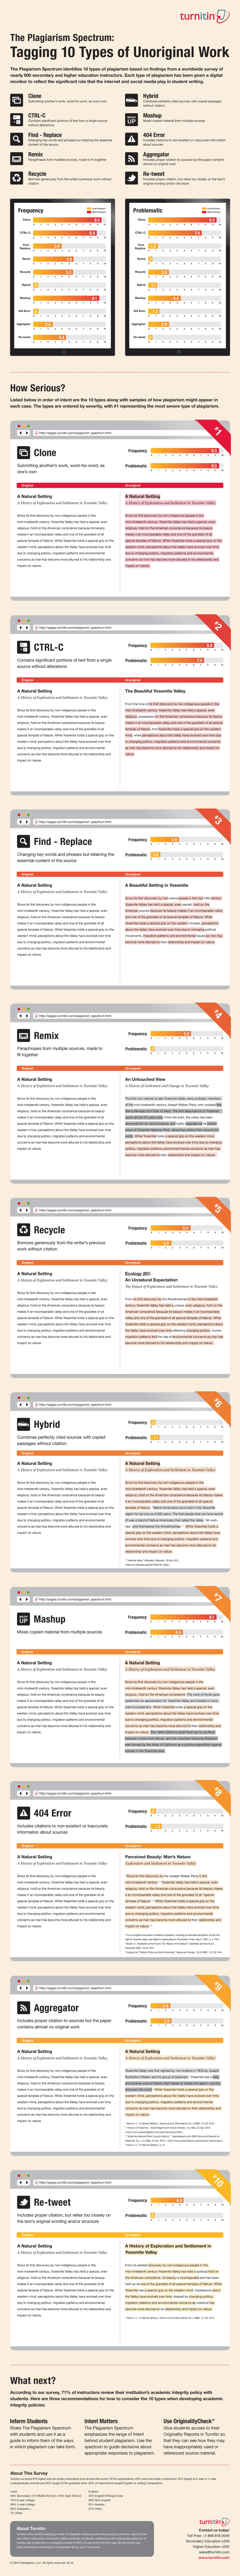 How to Identify Different Types of Plagiarism